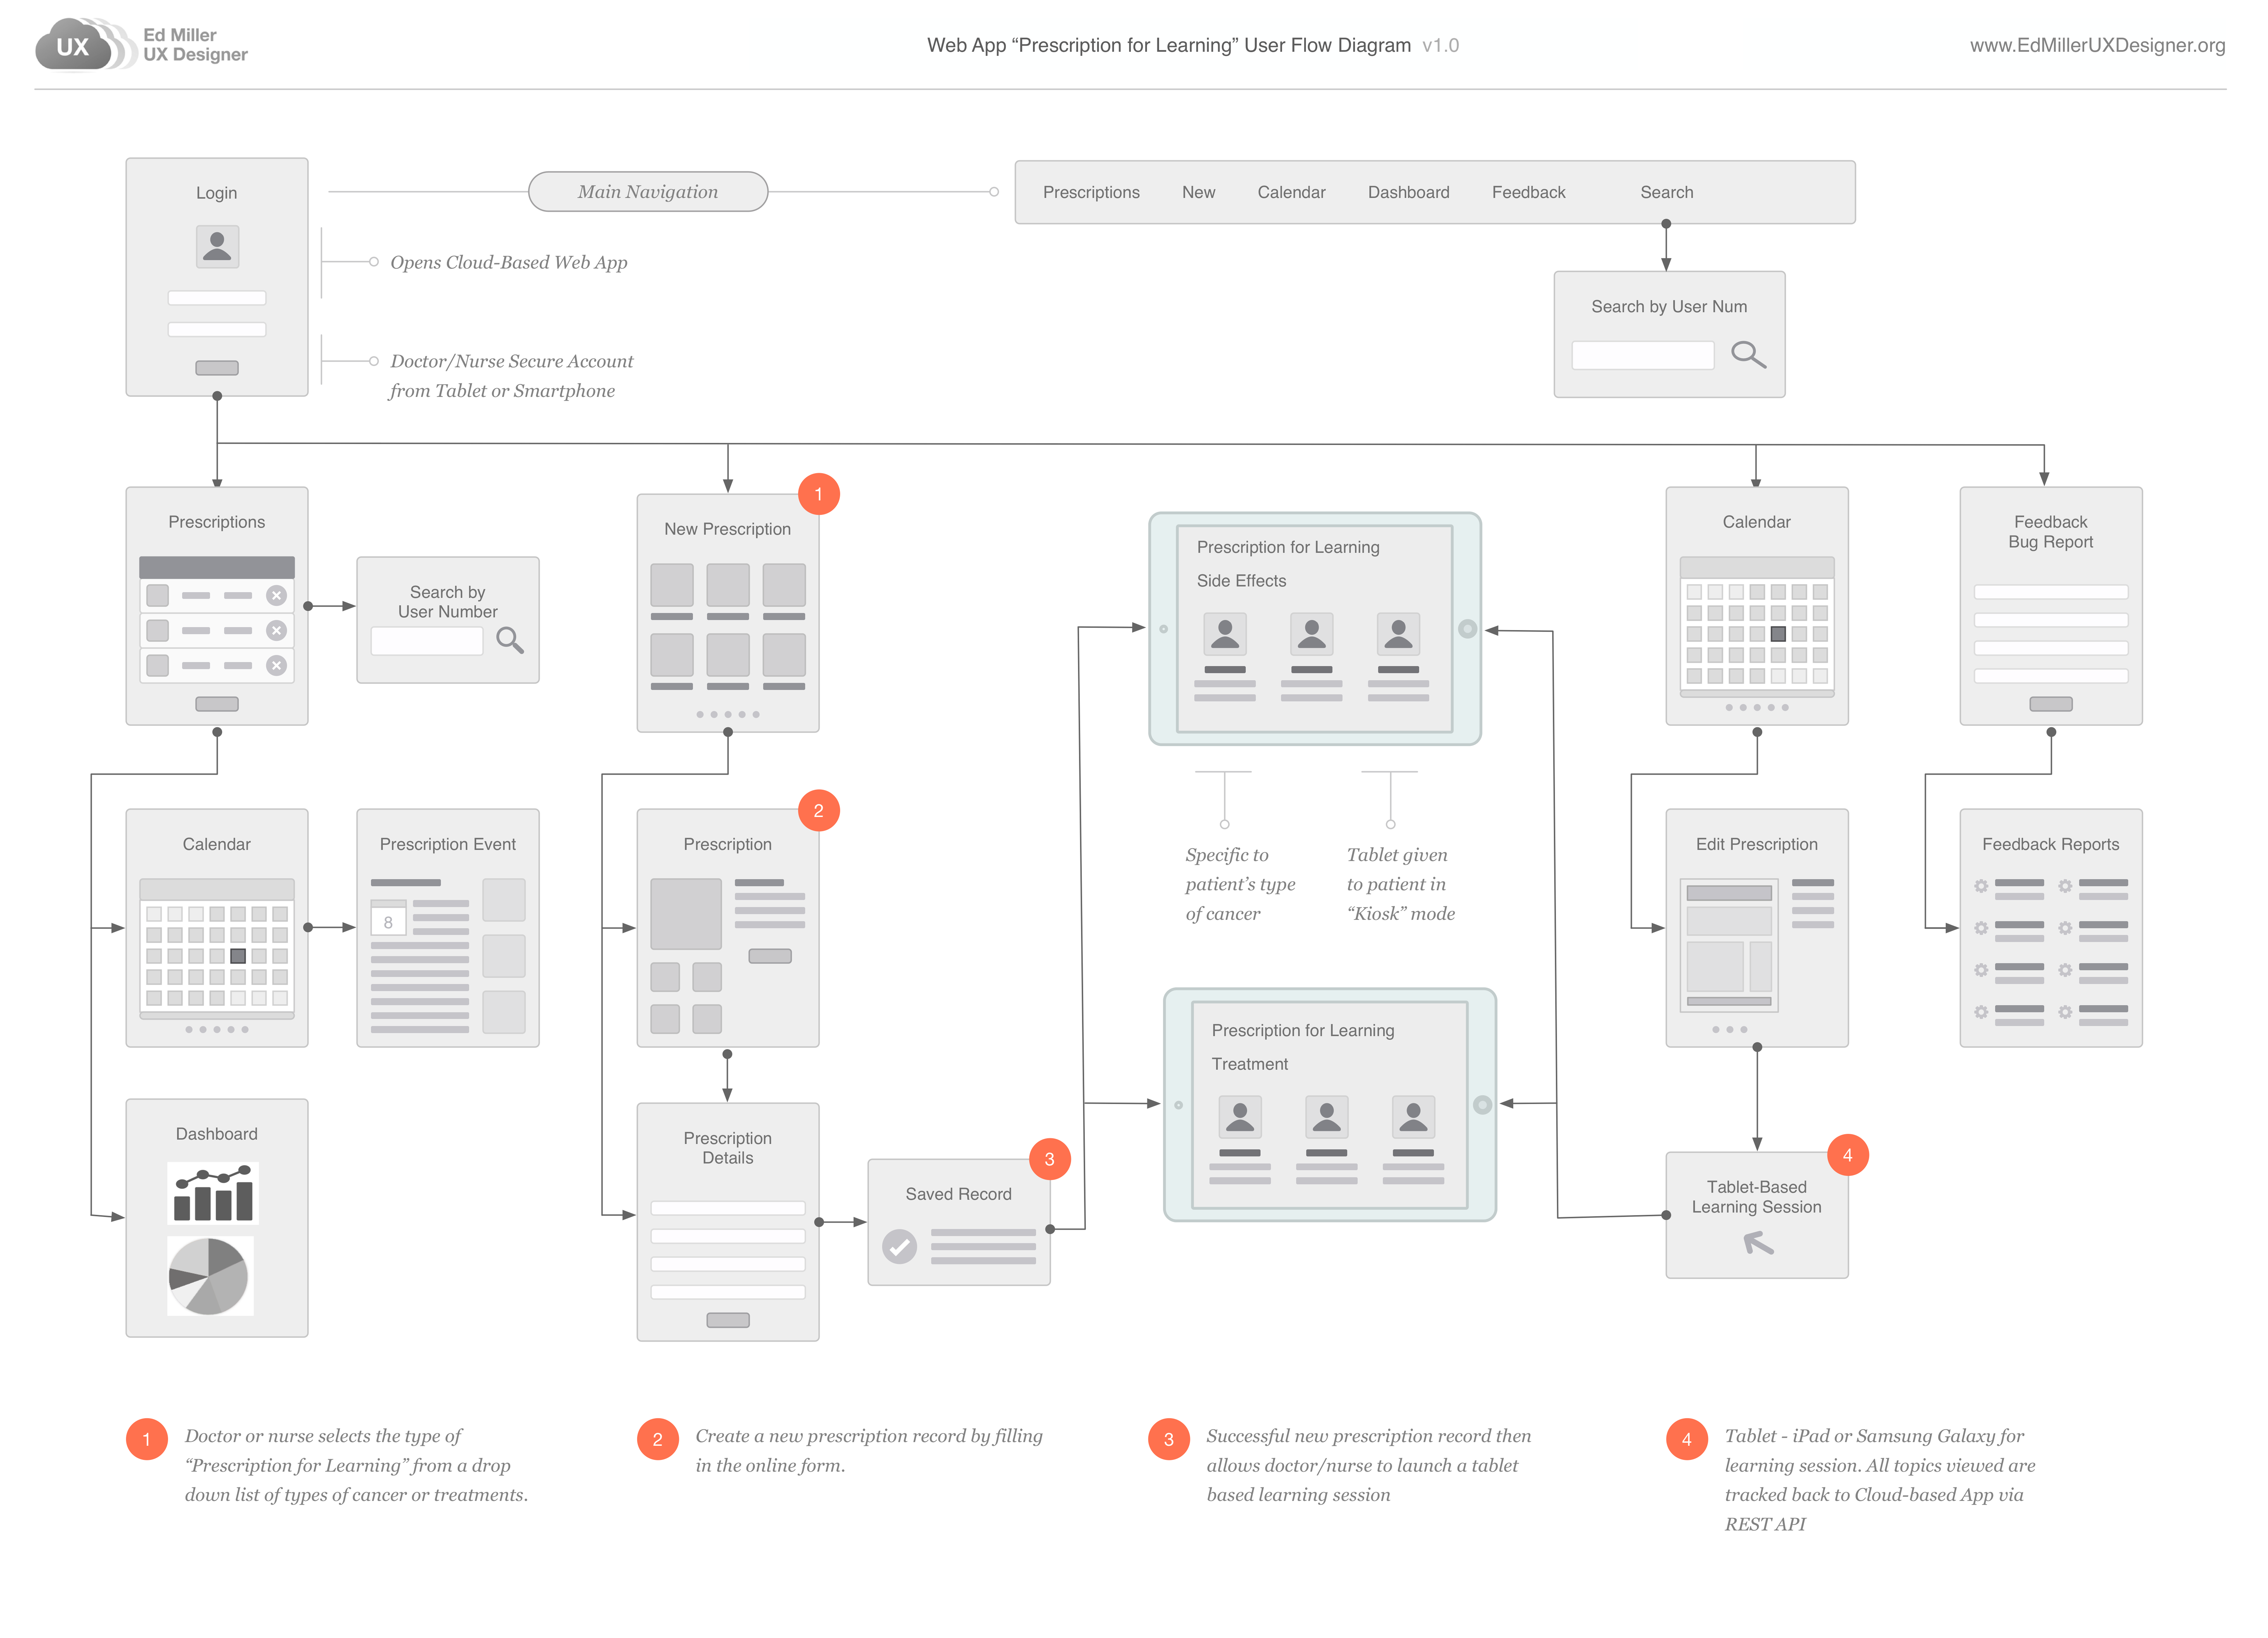 Web App For Patient Education Ed Miller Ux Designer Process Flow Diagram User Experience View At Full Size